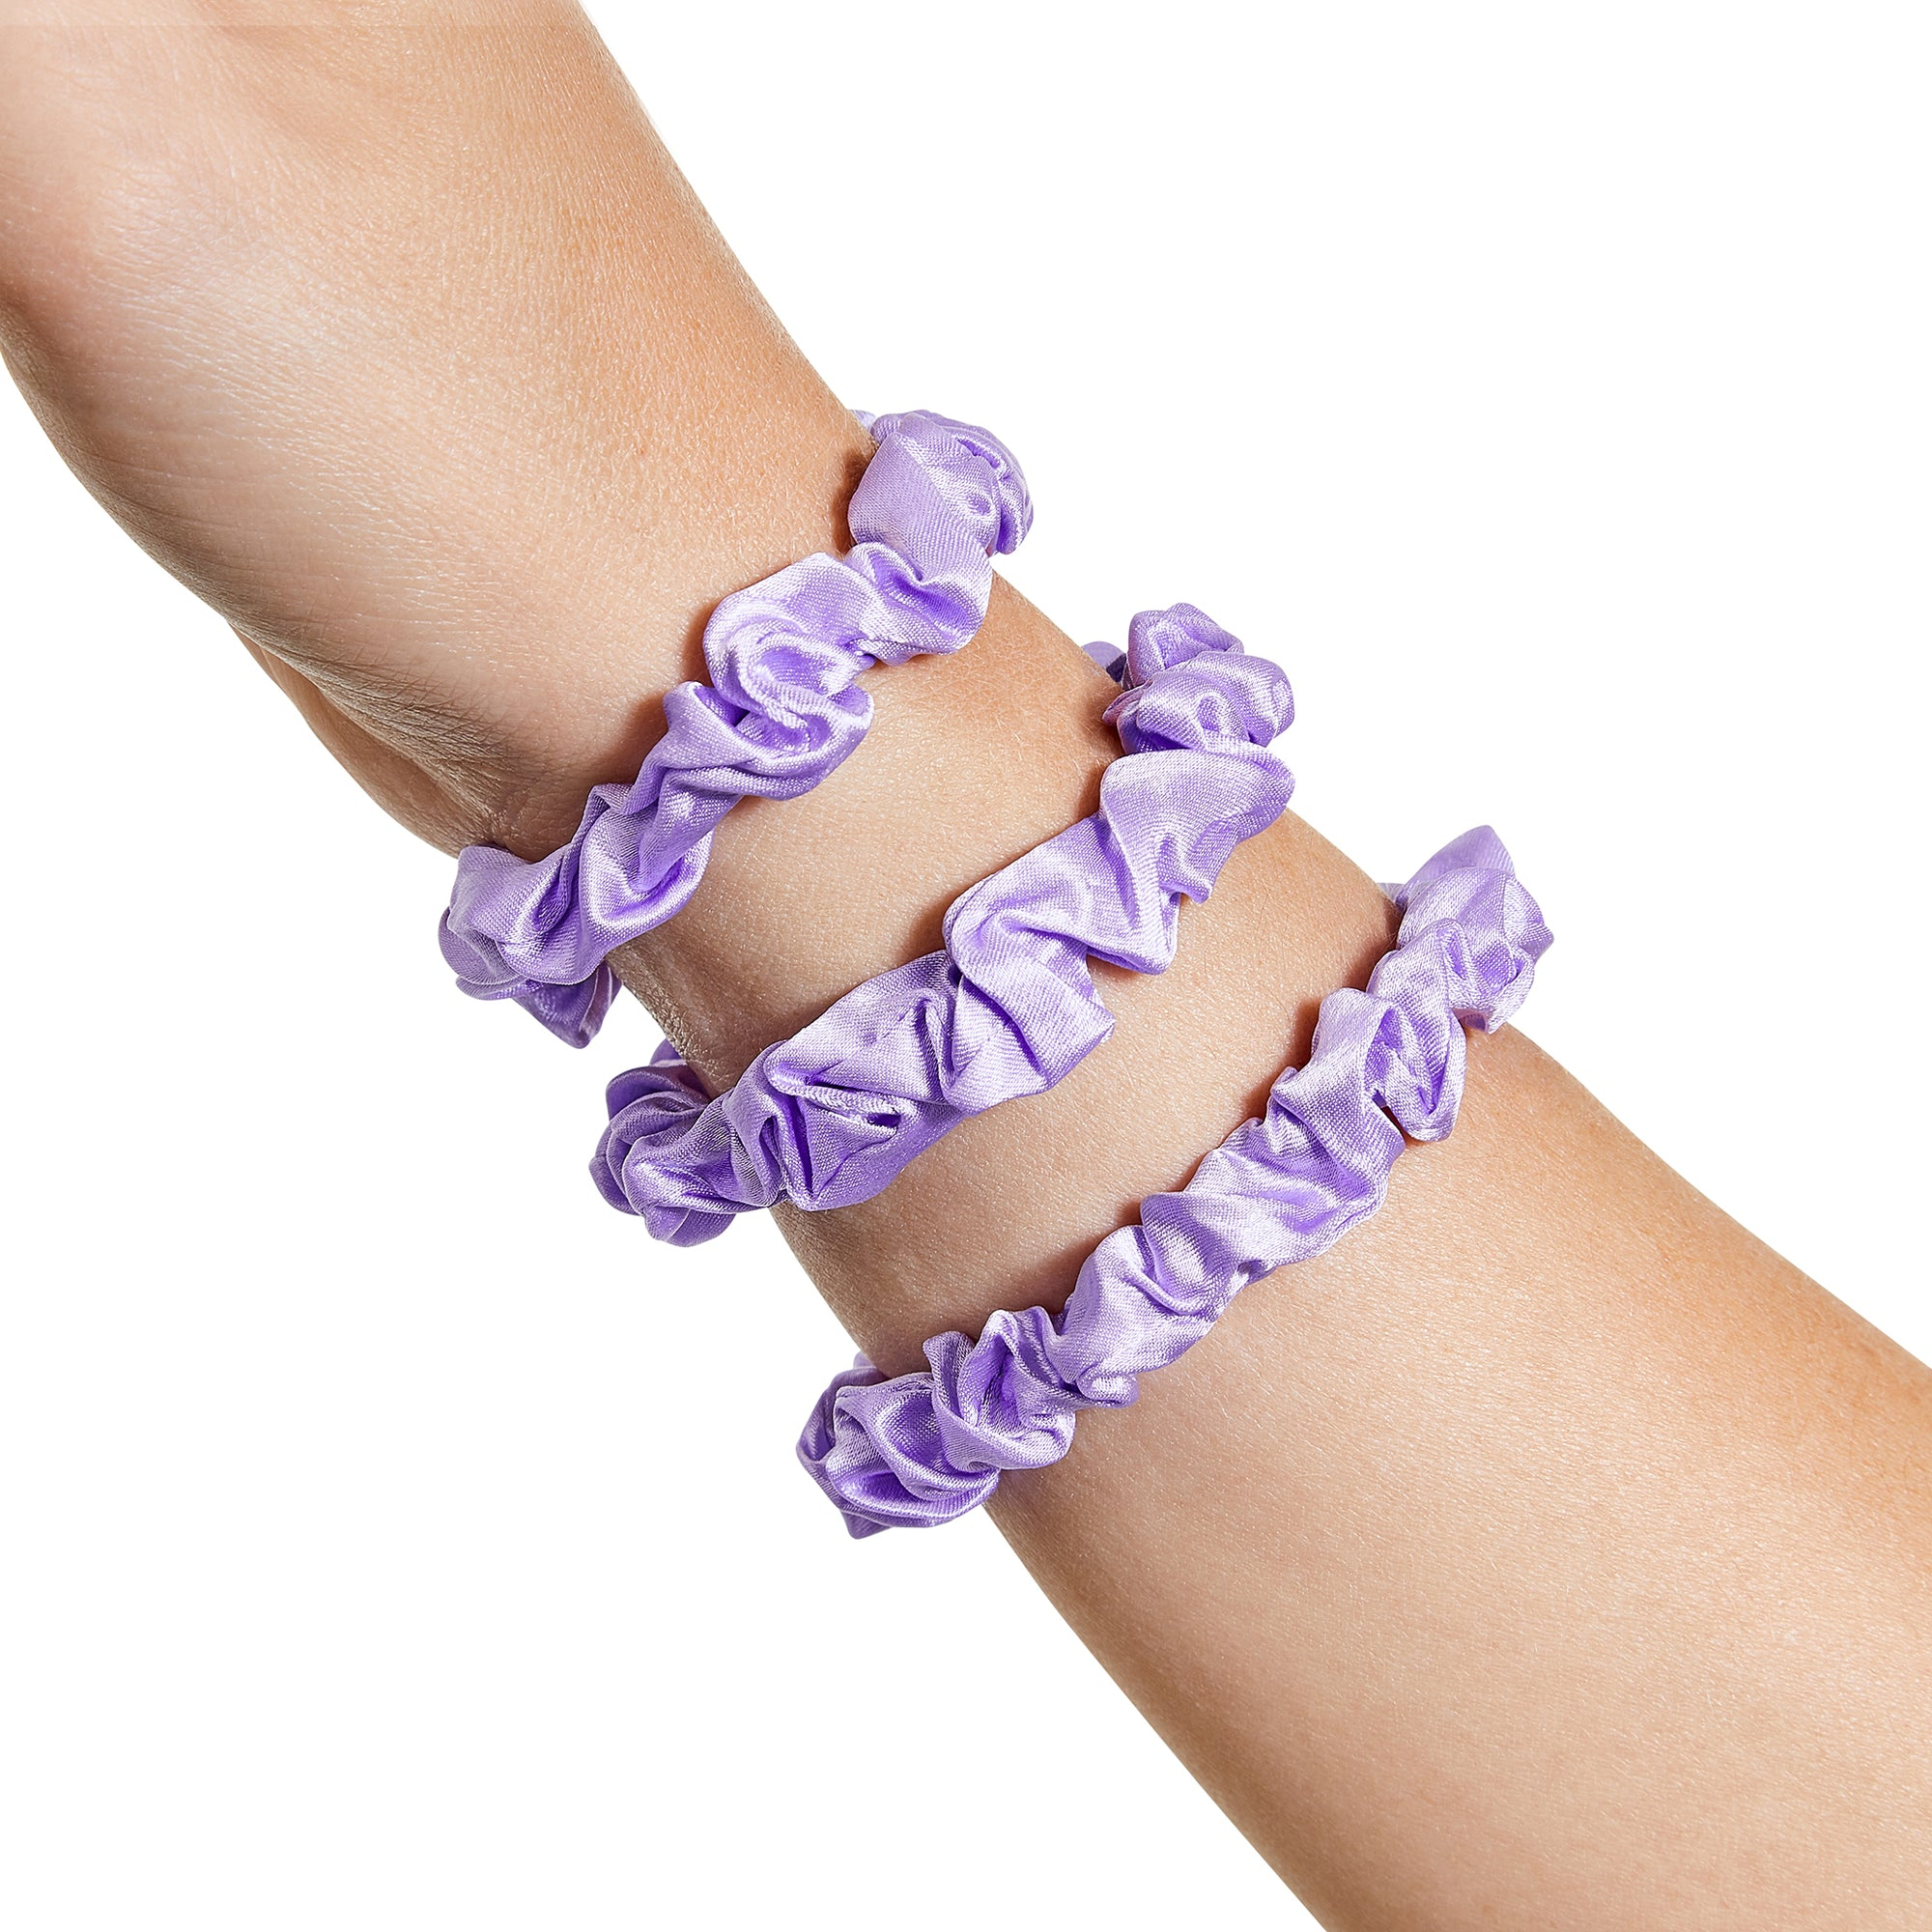 Only Curls Silk Scrunchies - Lavender Mini - Only Curls